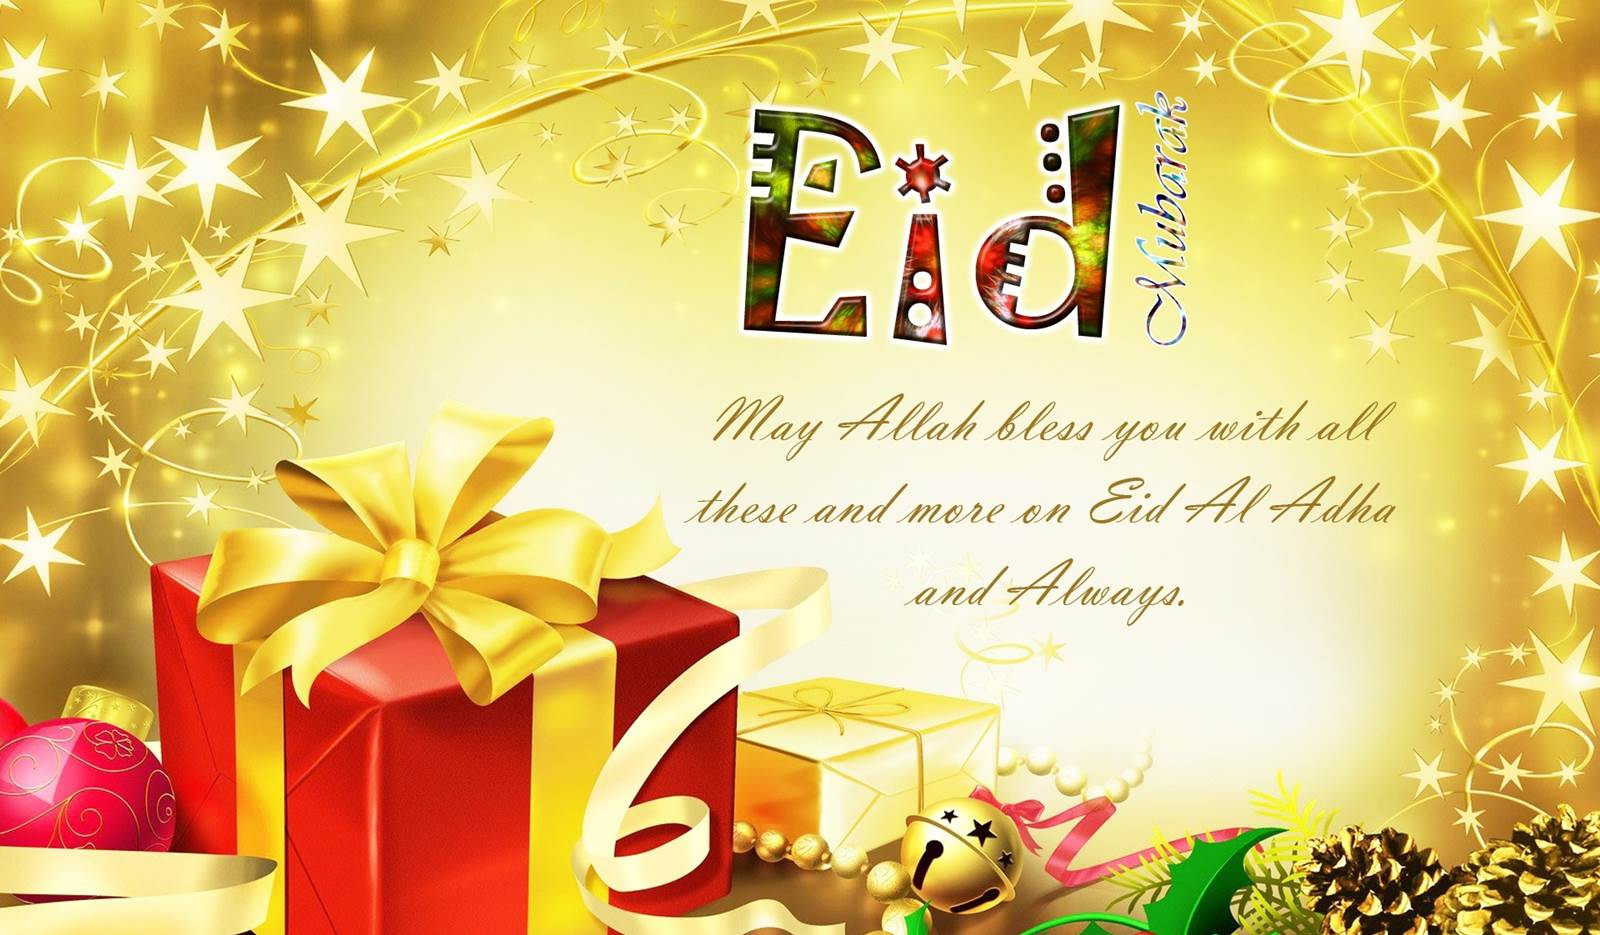 Eid Al Adha Mubarak Wallpapers  Eid Greeting Cards